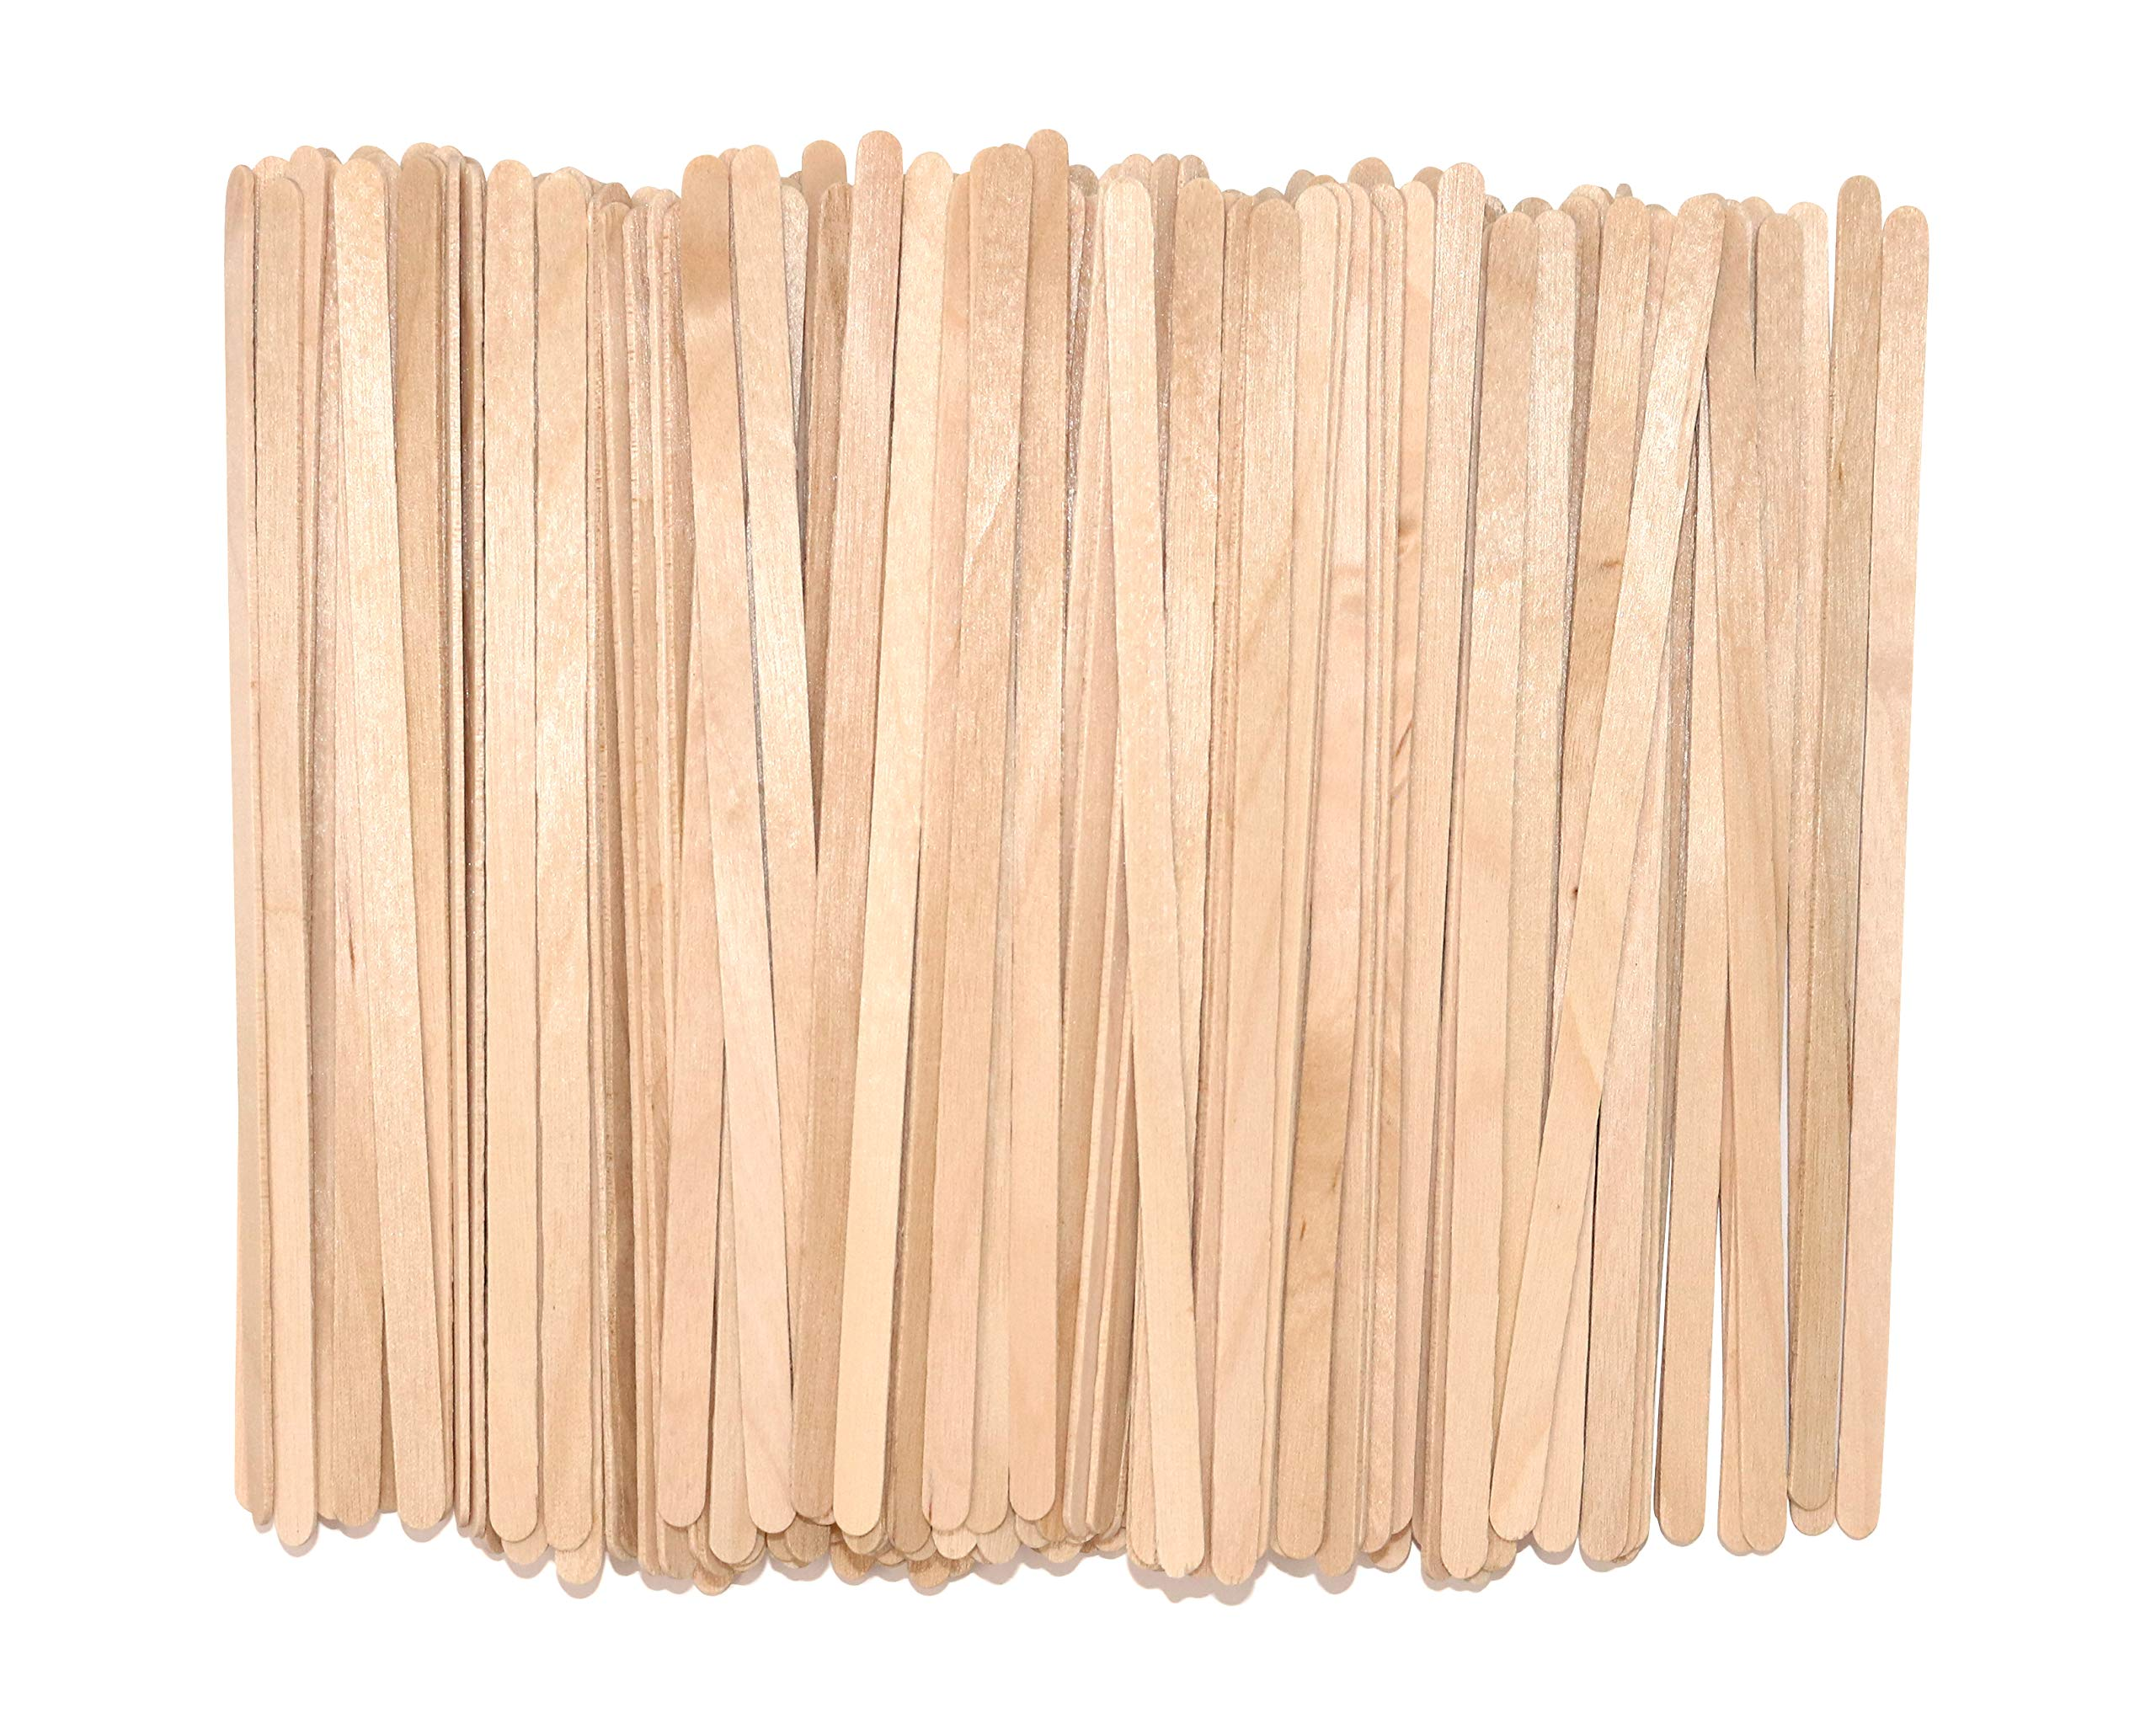 Coffee Stirrer Sticks, Made From Birch Wood, Eco-Friendly Wood Stirrers, 5.5 Inches Long, Smooth with Round Ends, Natural Color, 1,000/Box